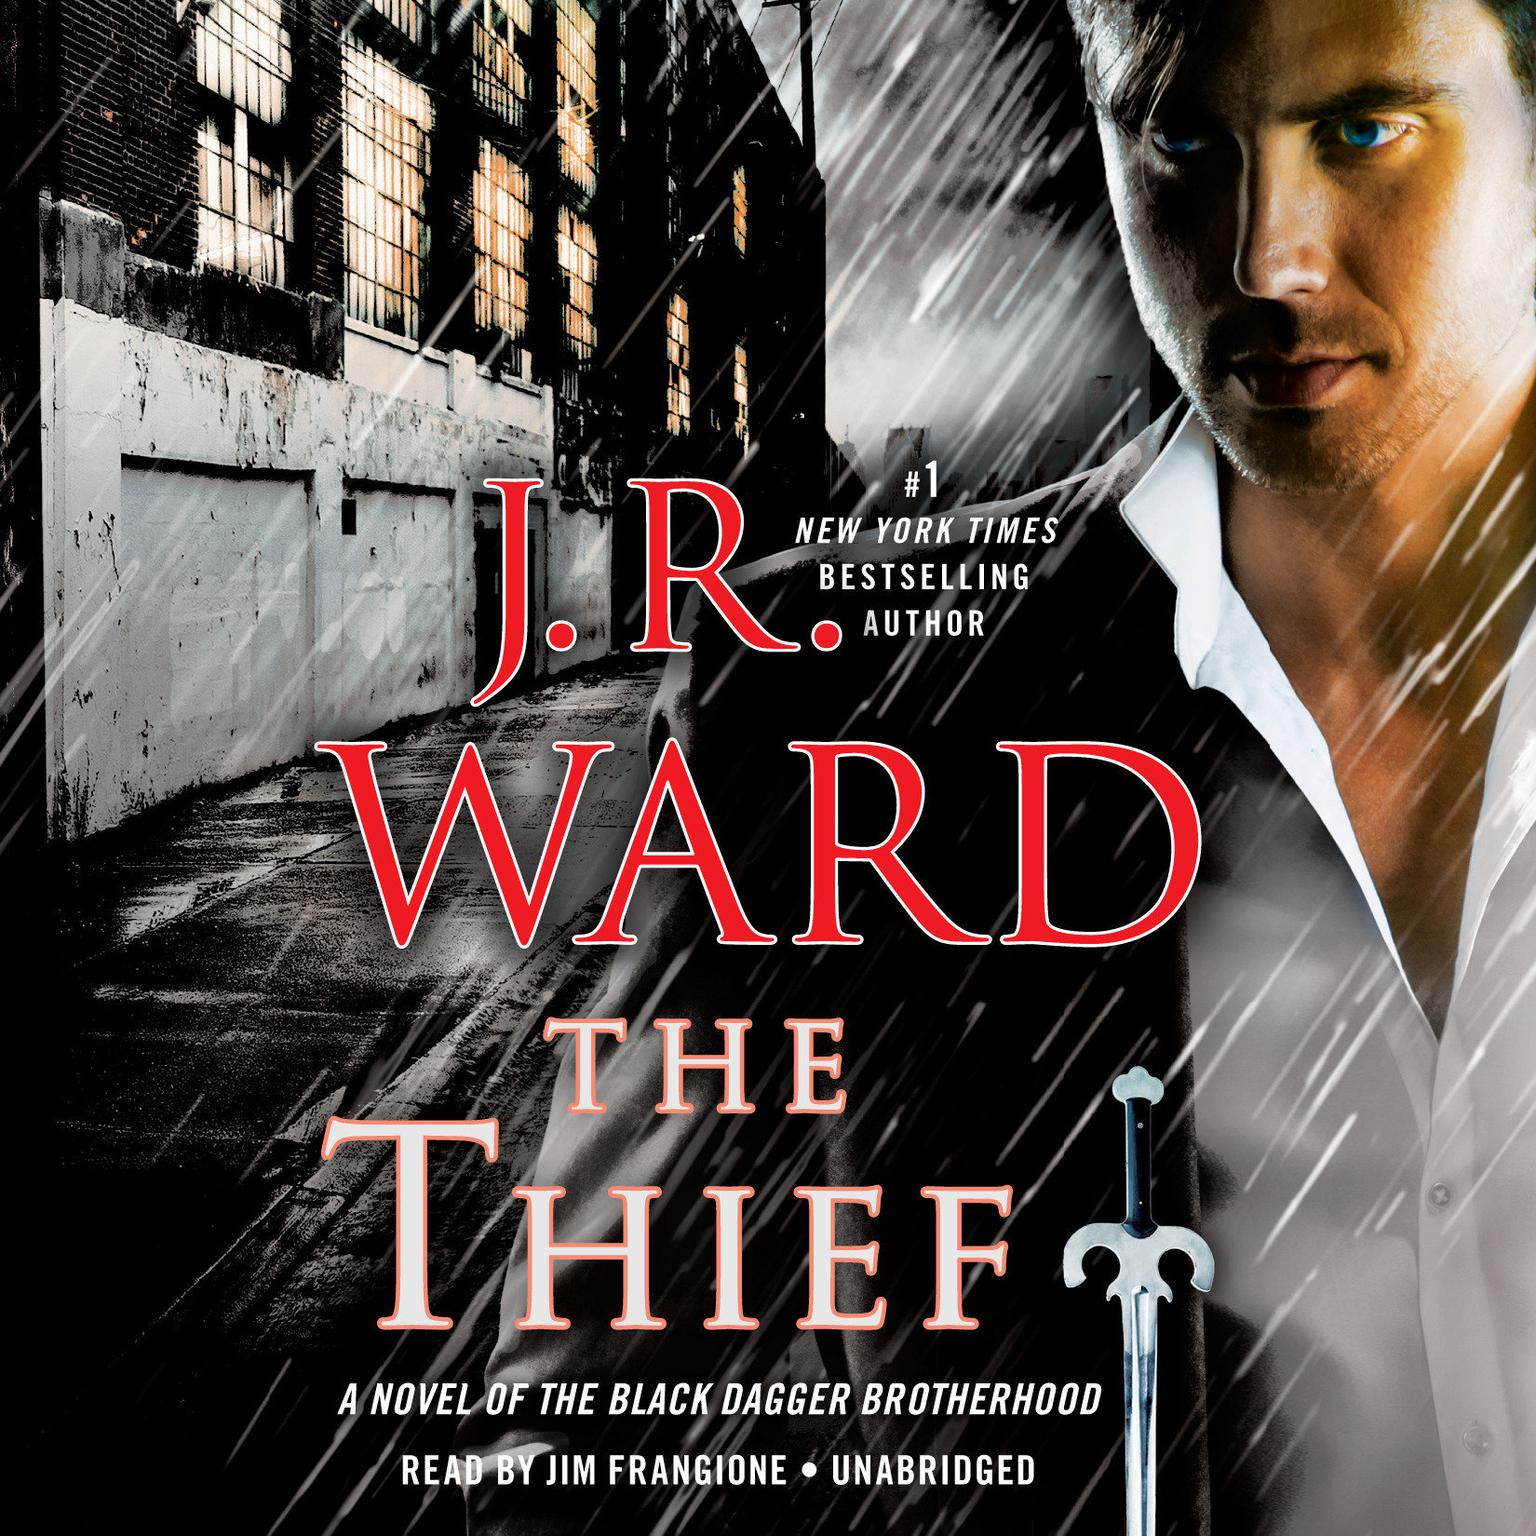 Printable The Thief: A Novel of the Black Dagger Brotherhood Audiobook Cover Art